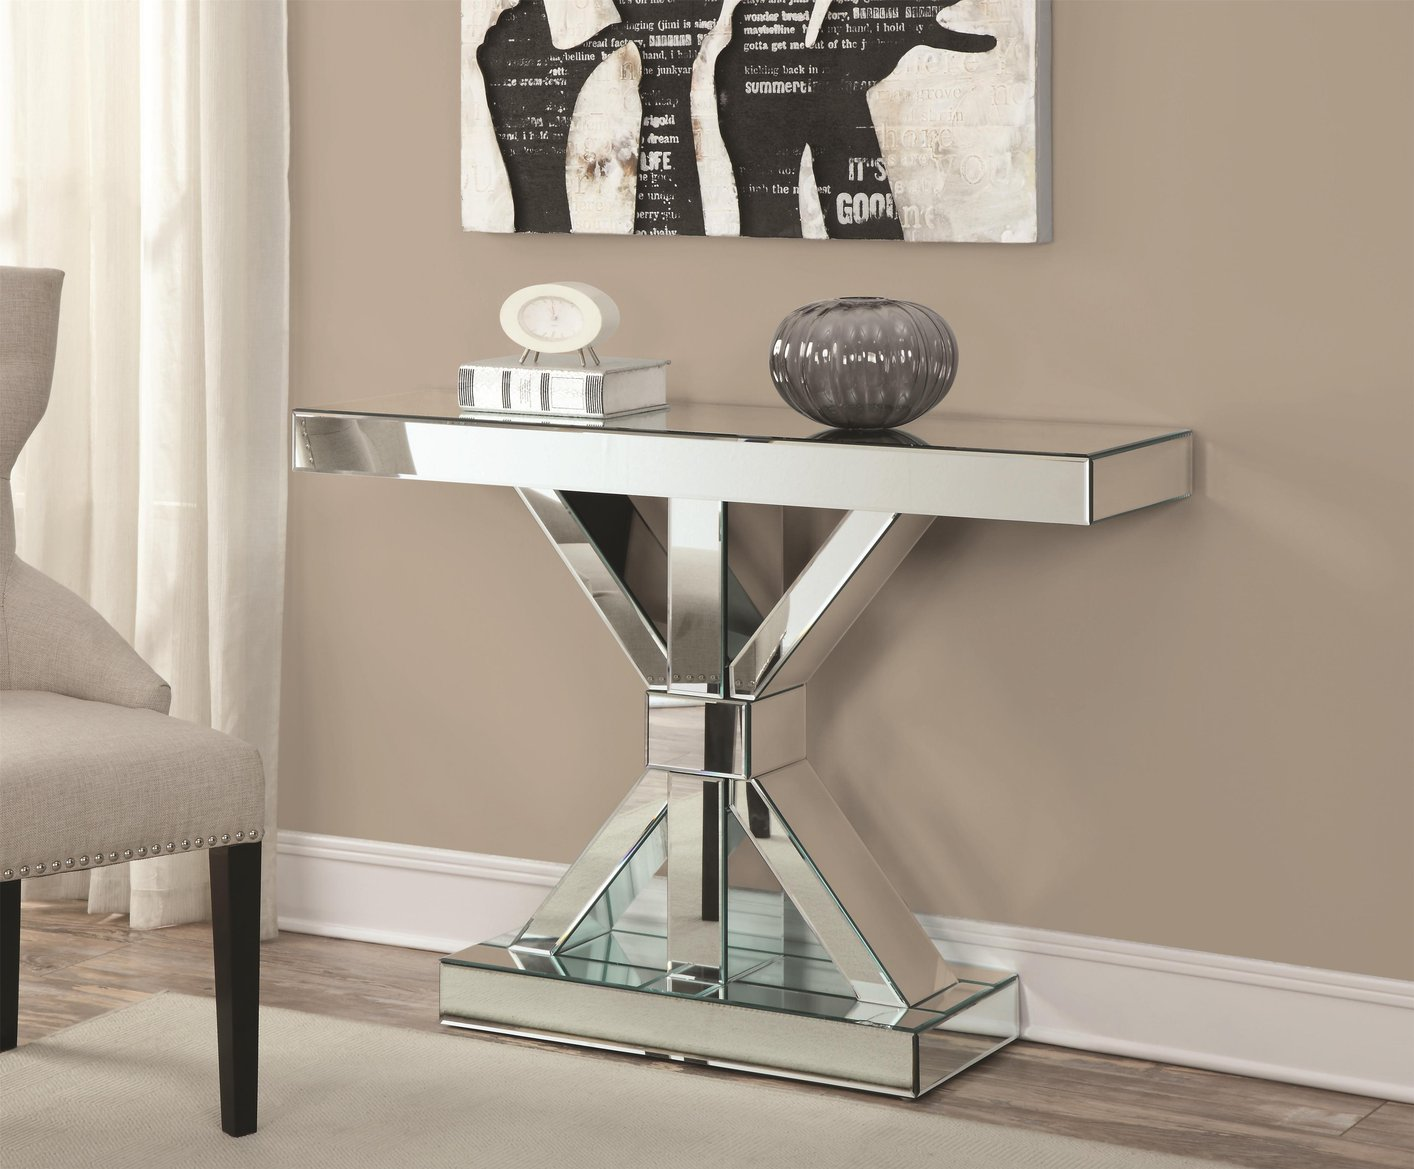 silver wood console table steal sofa furniture los angeles glass gold accent circular patio cover sliding barn door for dining room seaside themed lighting mango end pier imports